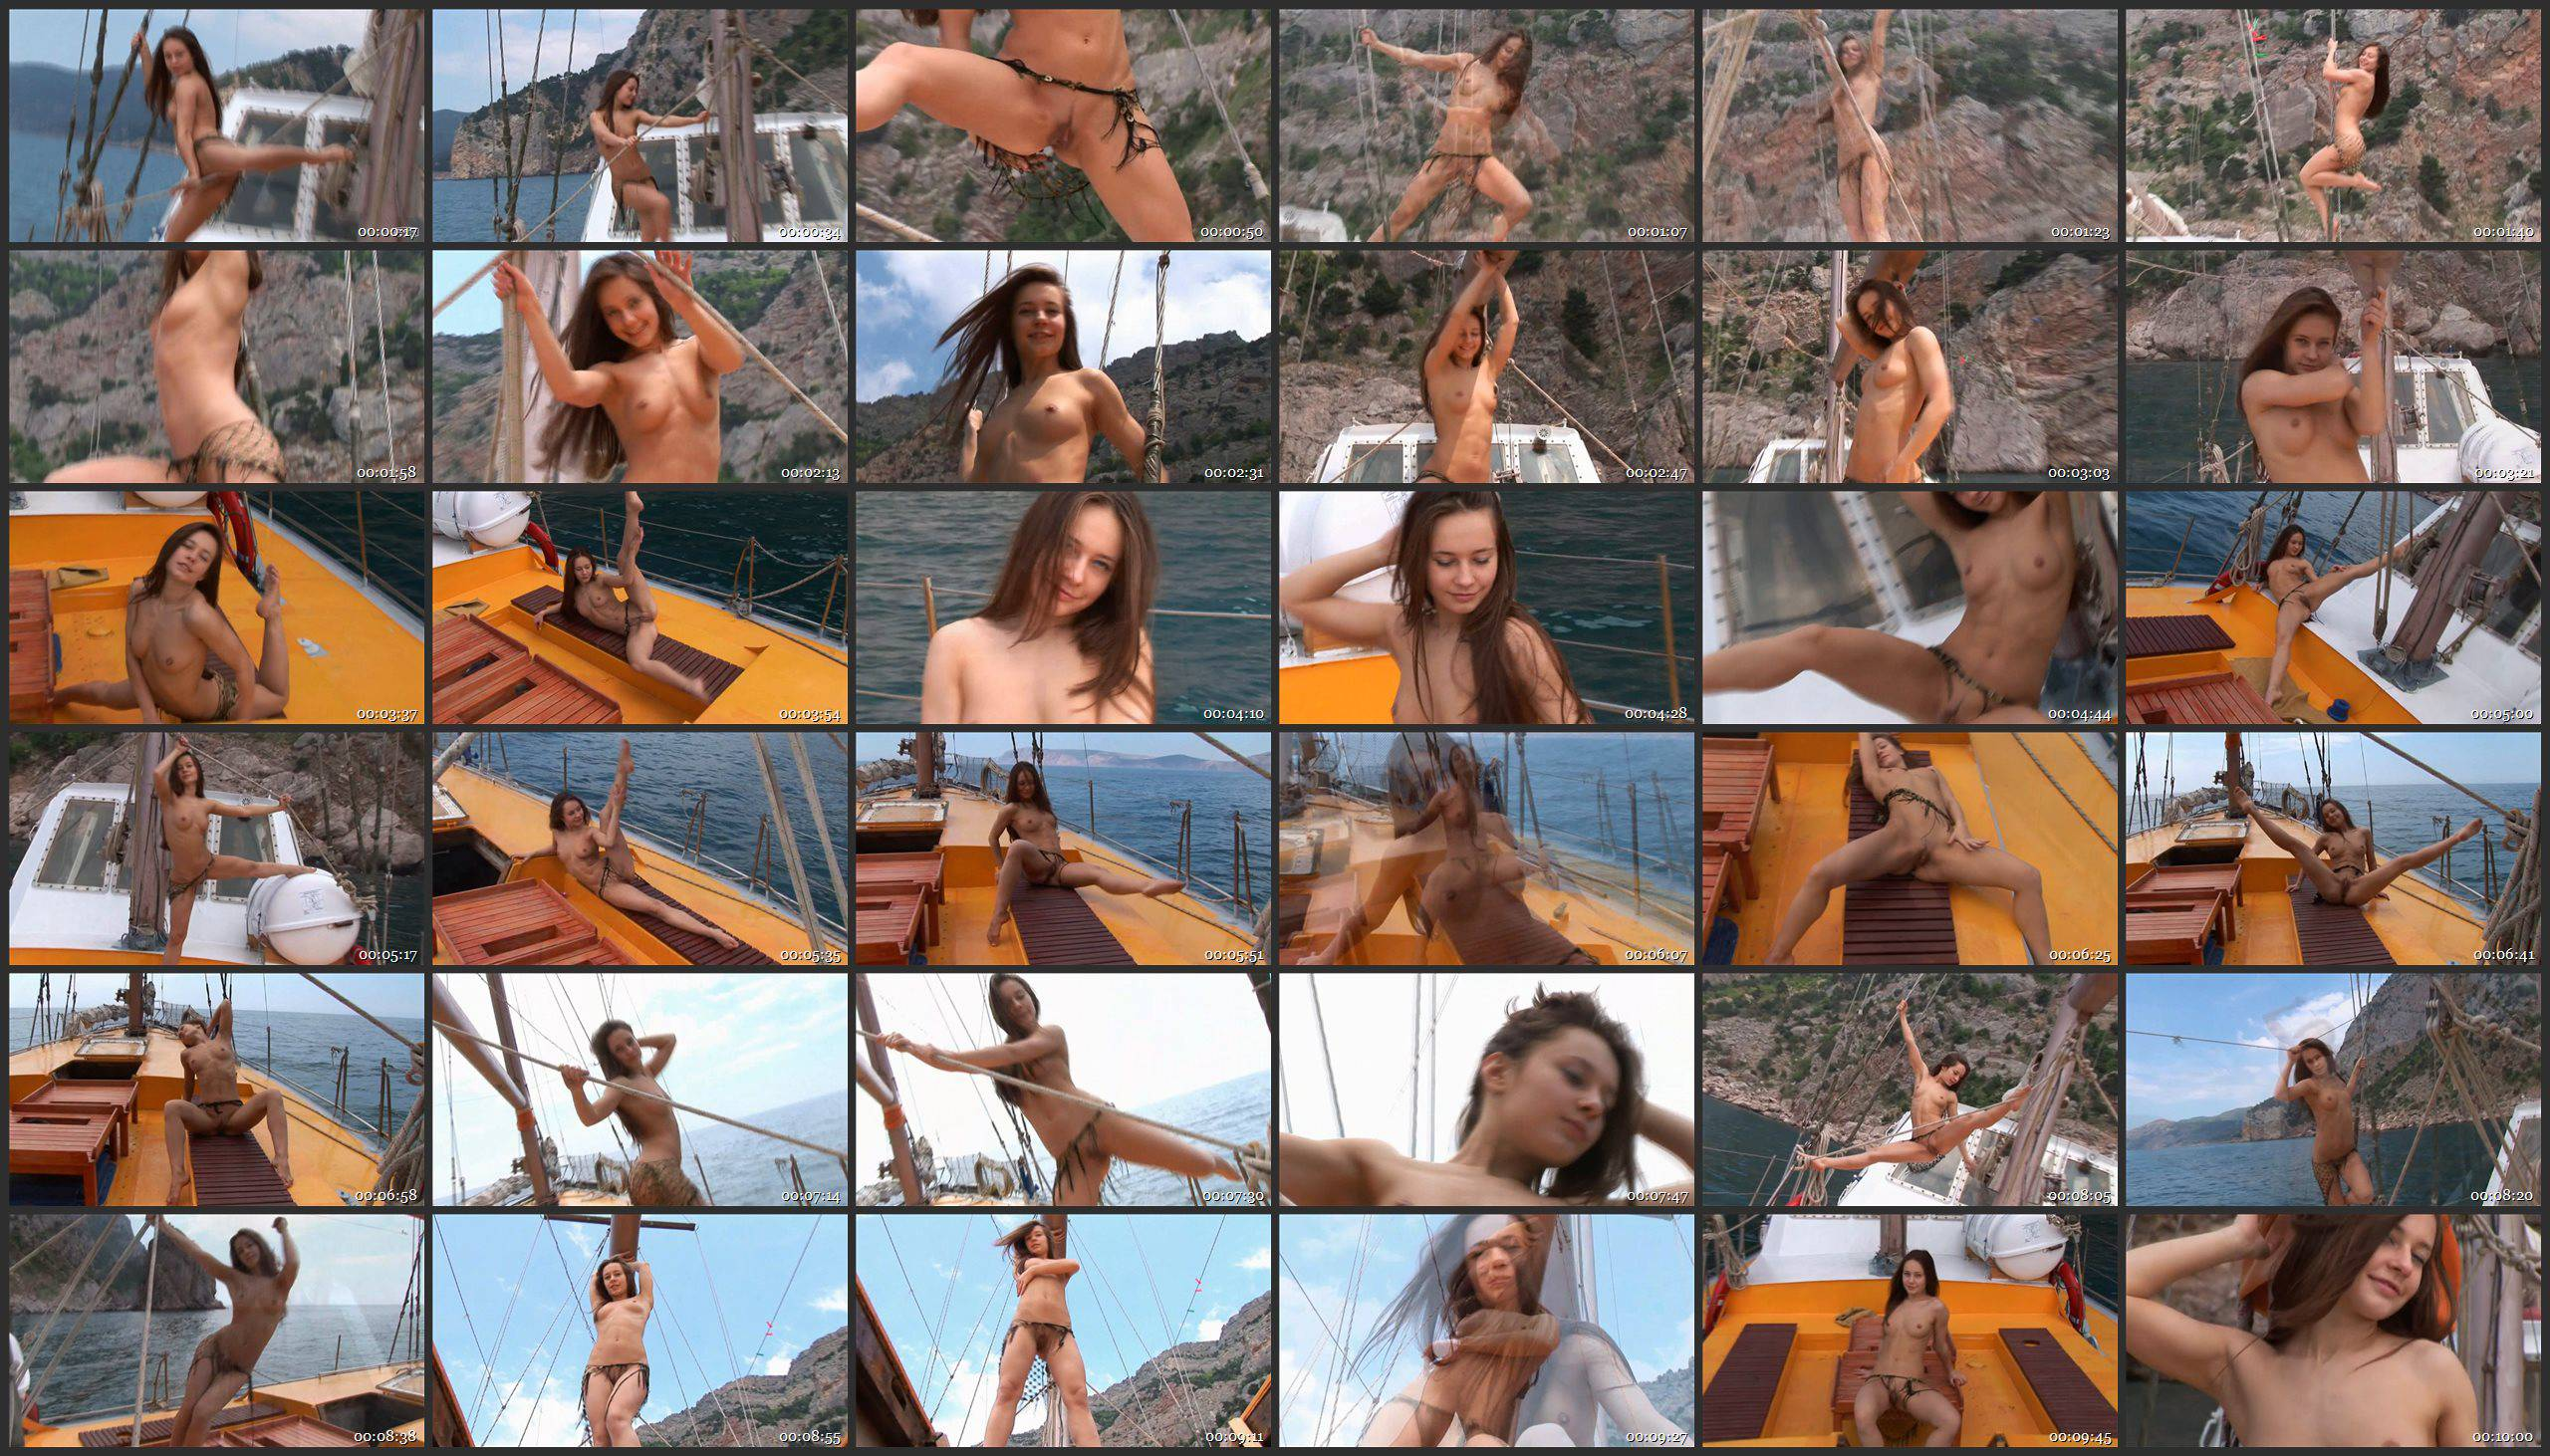 Nude girl relaxing on a yacht - MetArt - Thumbnails